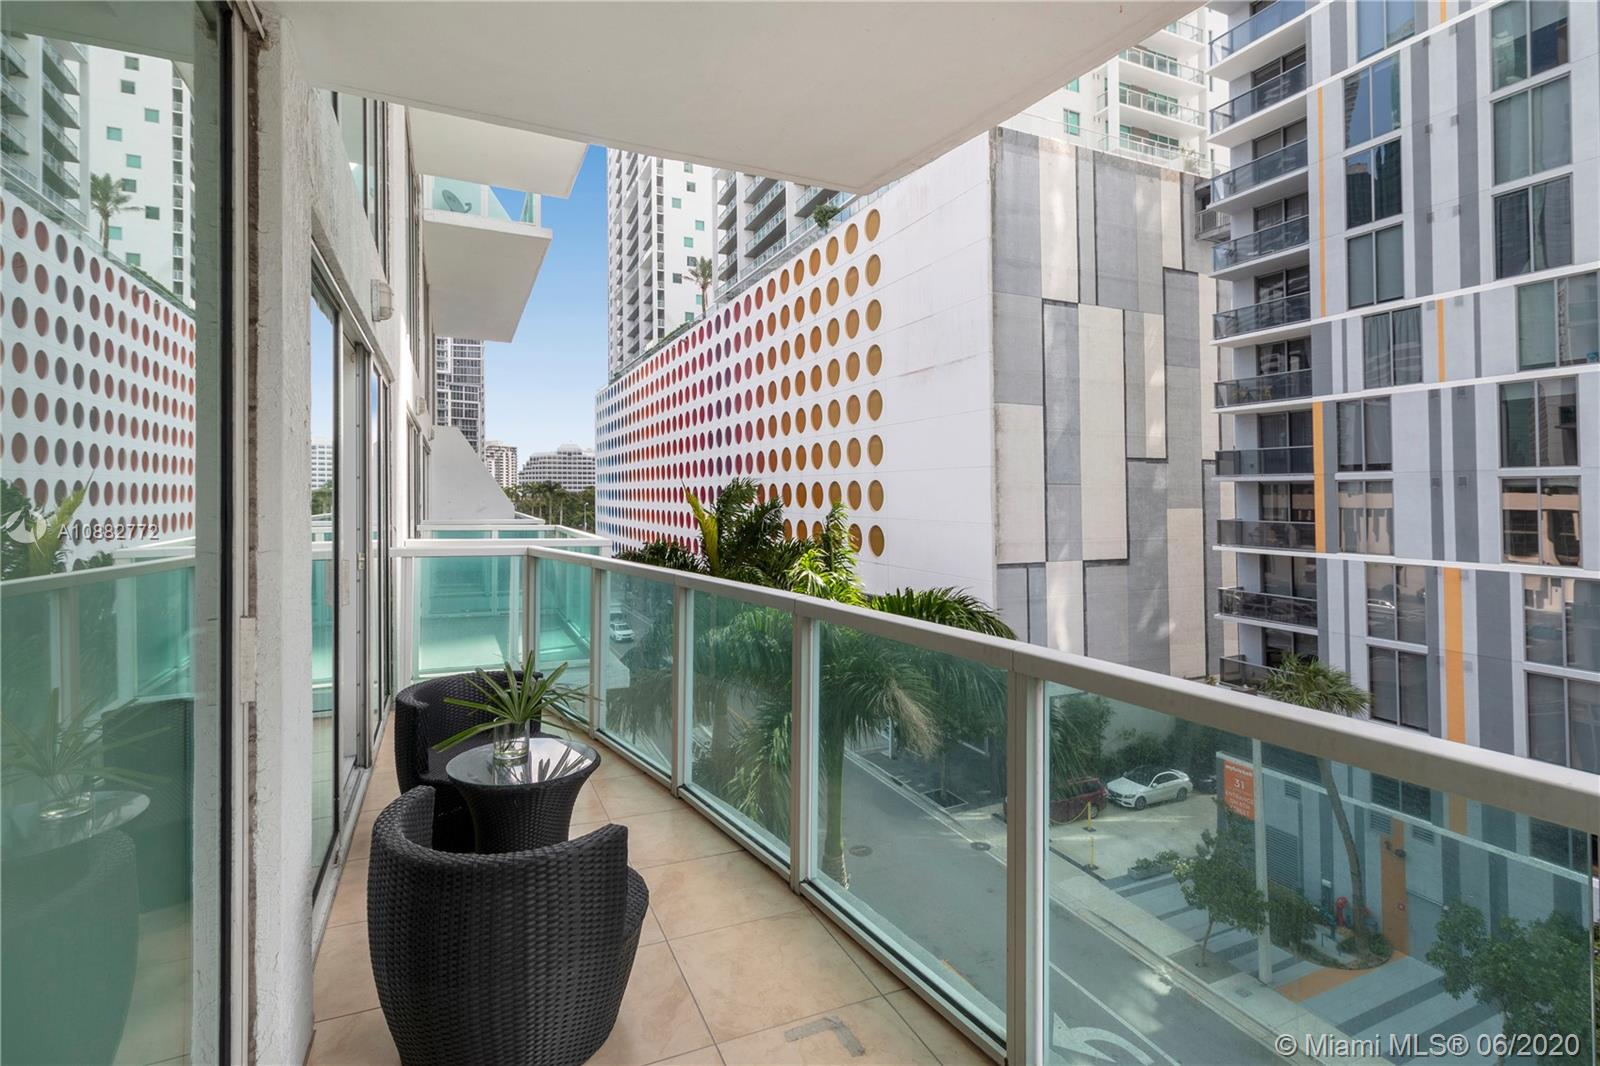 Brickell on the River #408 - 04 - photo